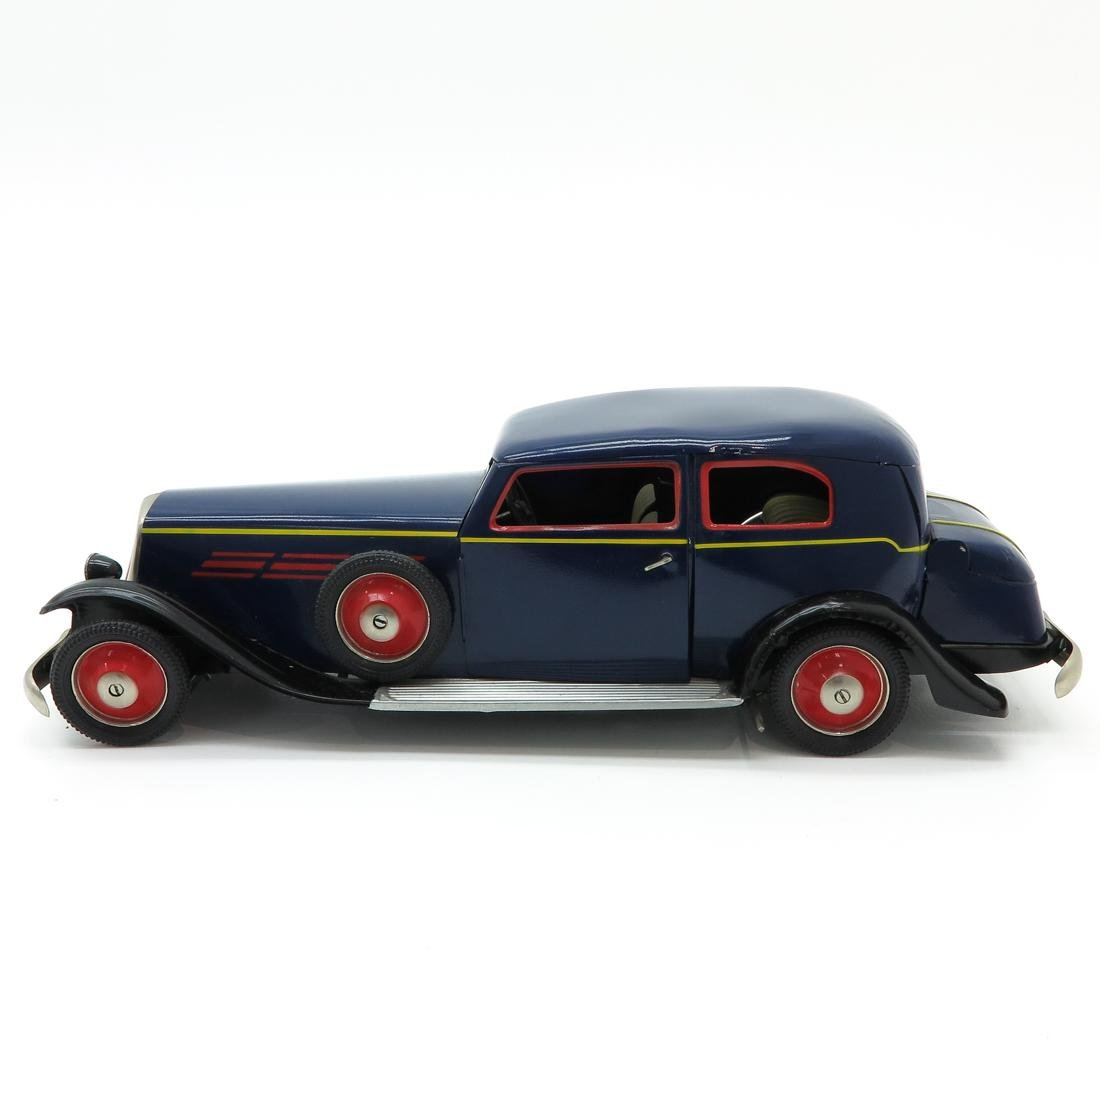 Jaguete Paya 1935 Toy Car